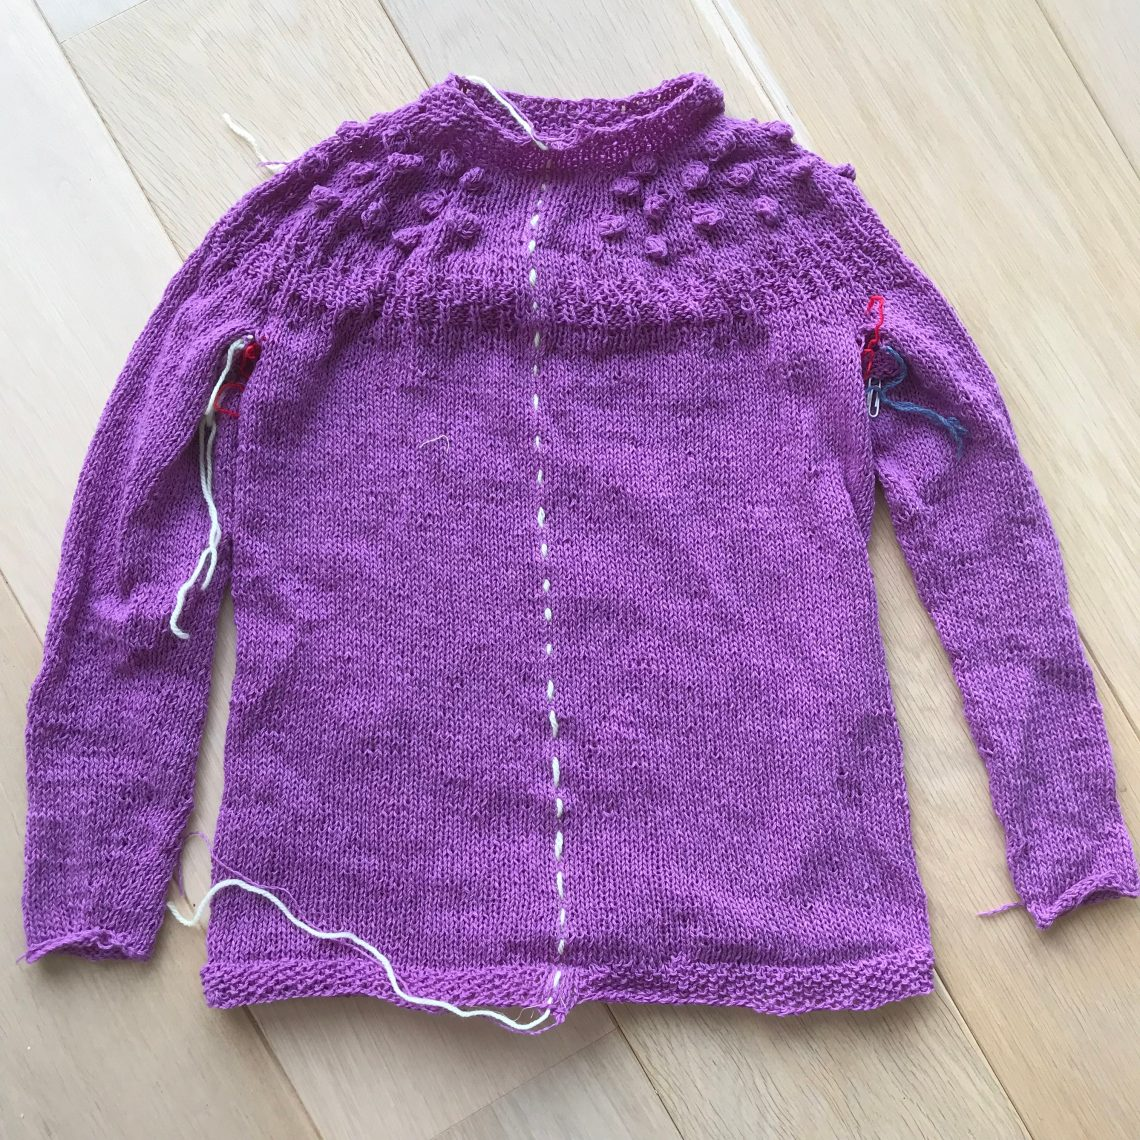 Cardigan from Elizabeth Zimmermann